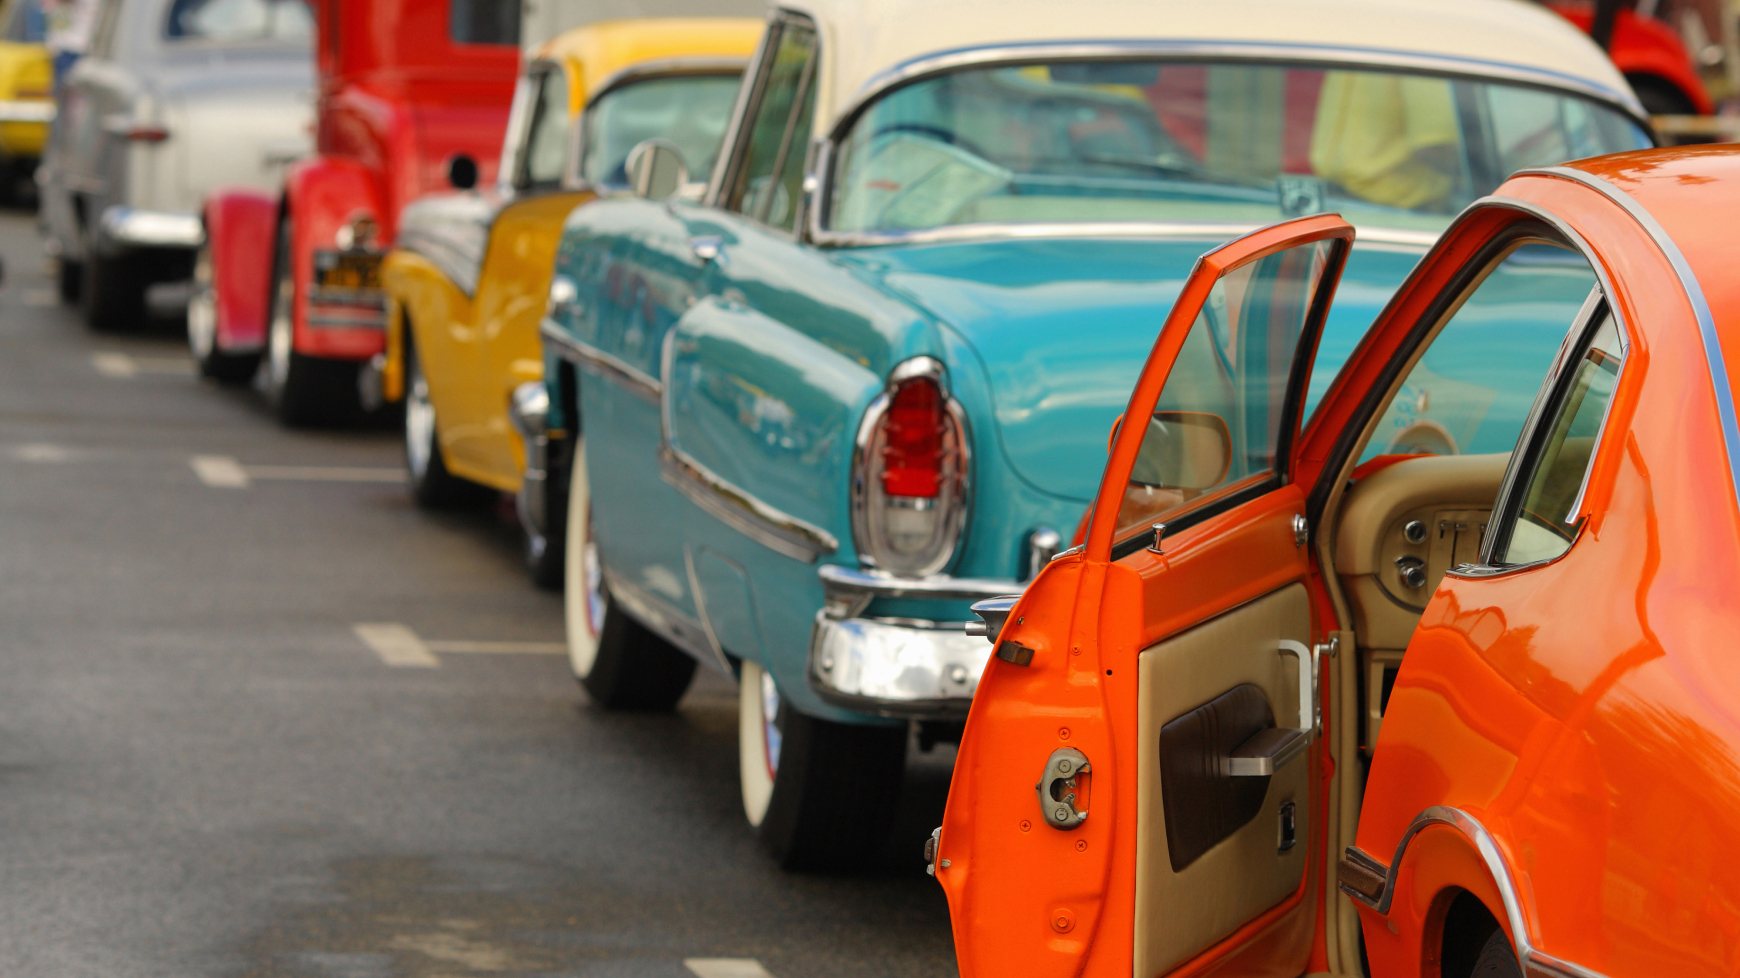 Several Antique Cars Lined Up on the Road